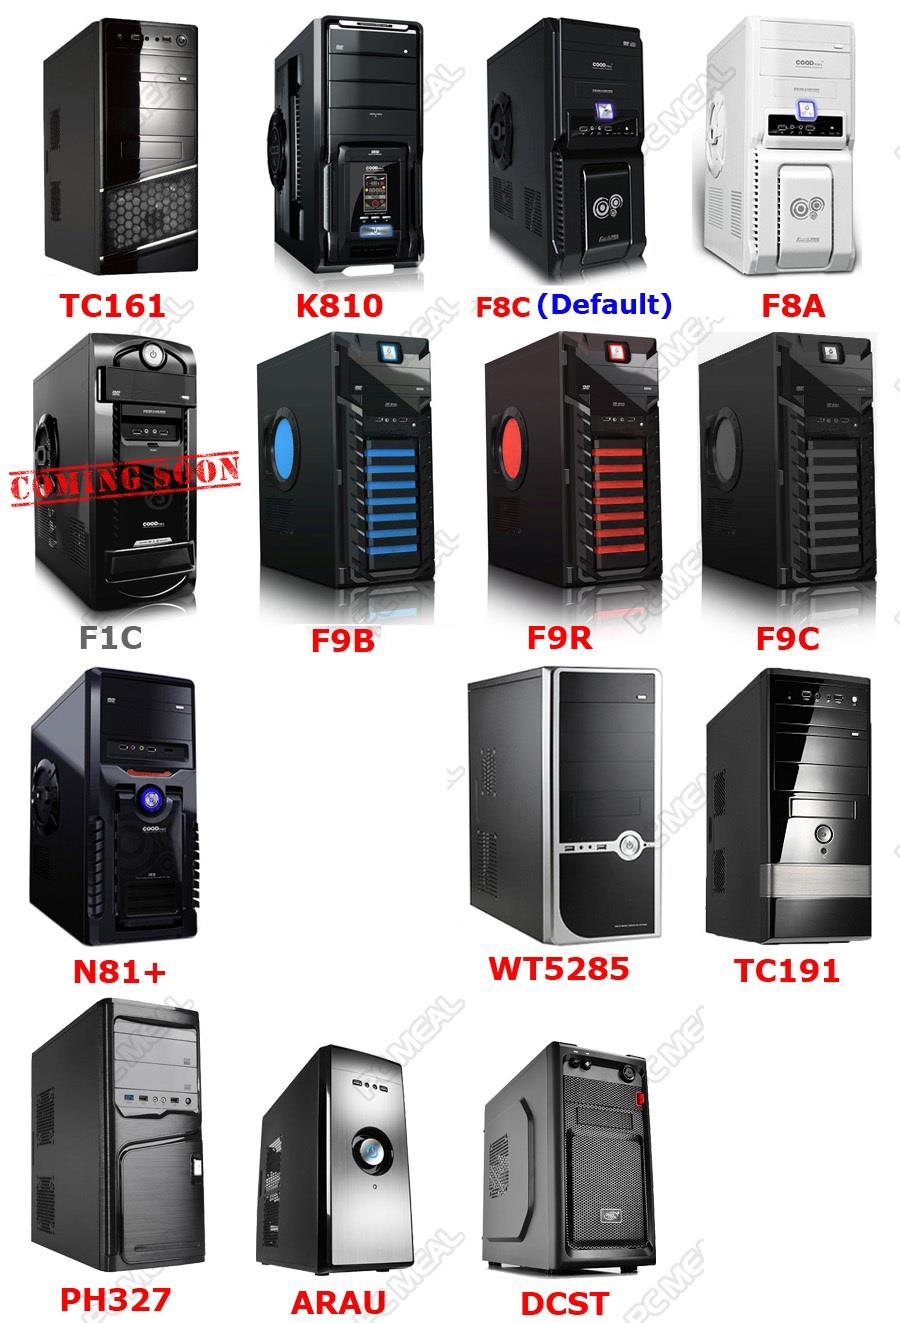 http://www.pcmeal.com/ebay/ComputerSystem/COODmax/ceWfJIn3O74HE01.jpg